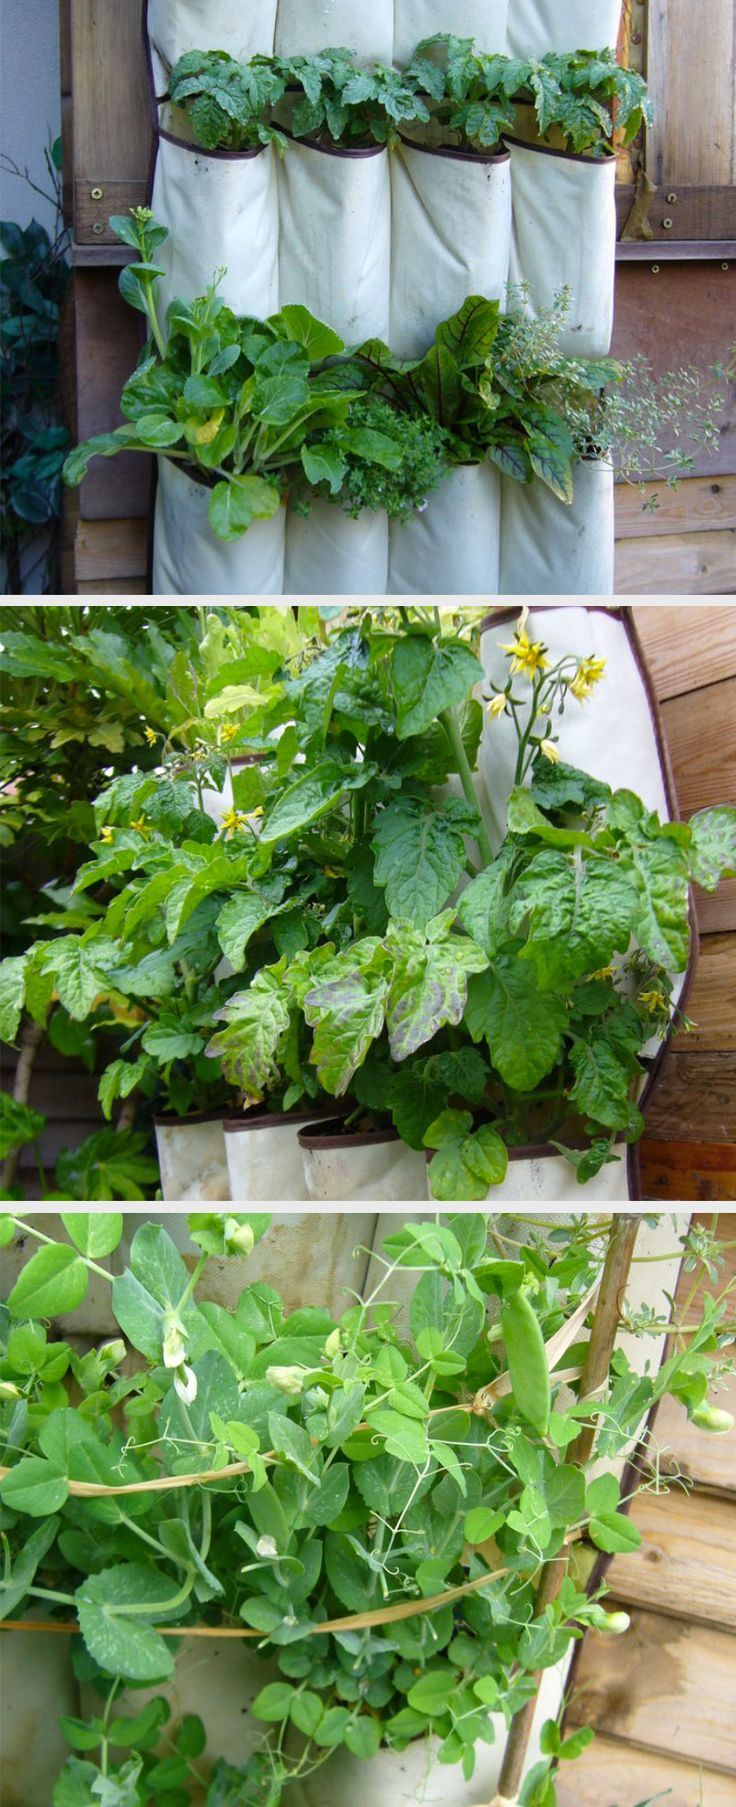 287 best gardening images on pinterest plants projects and